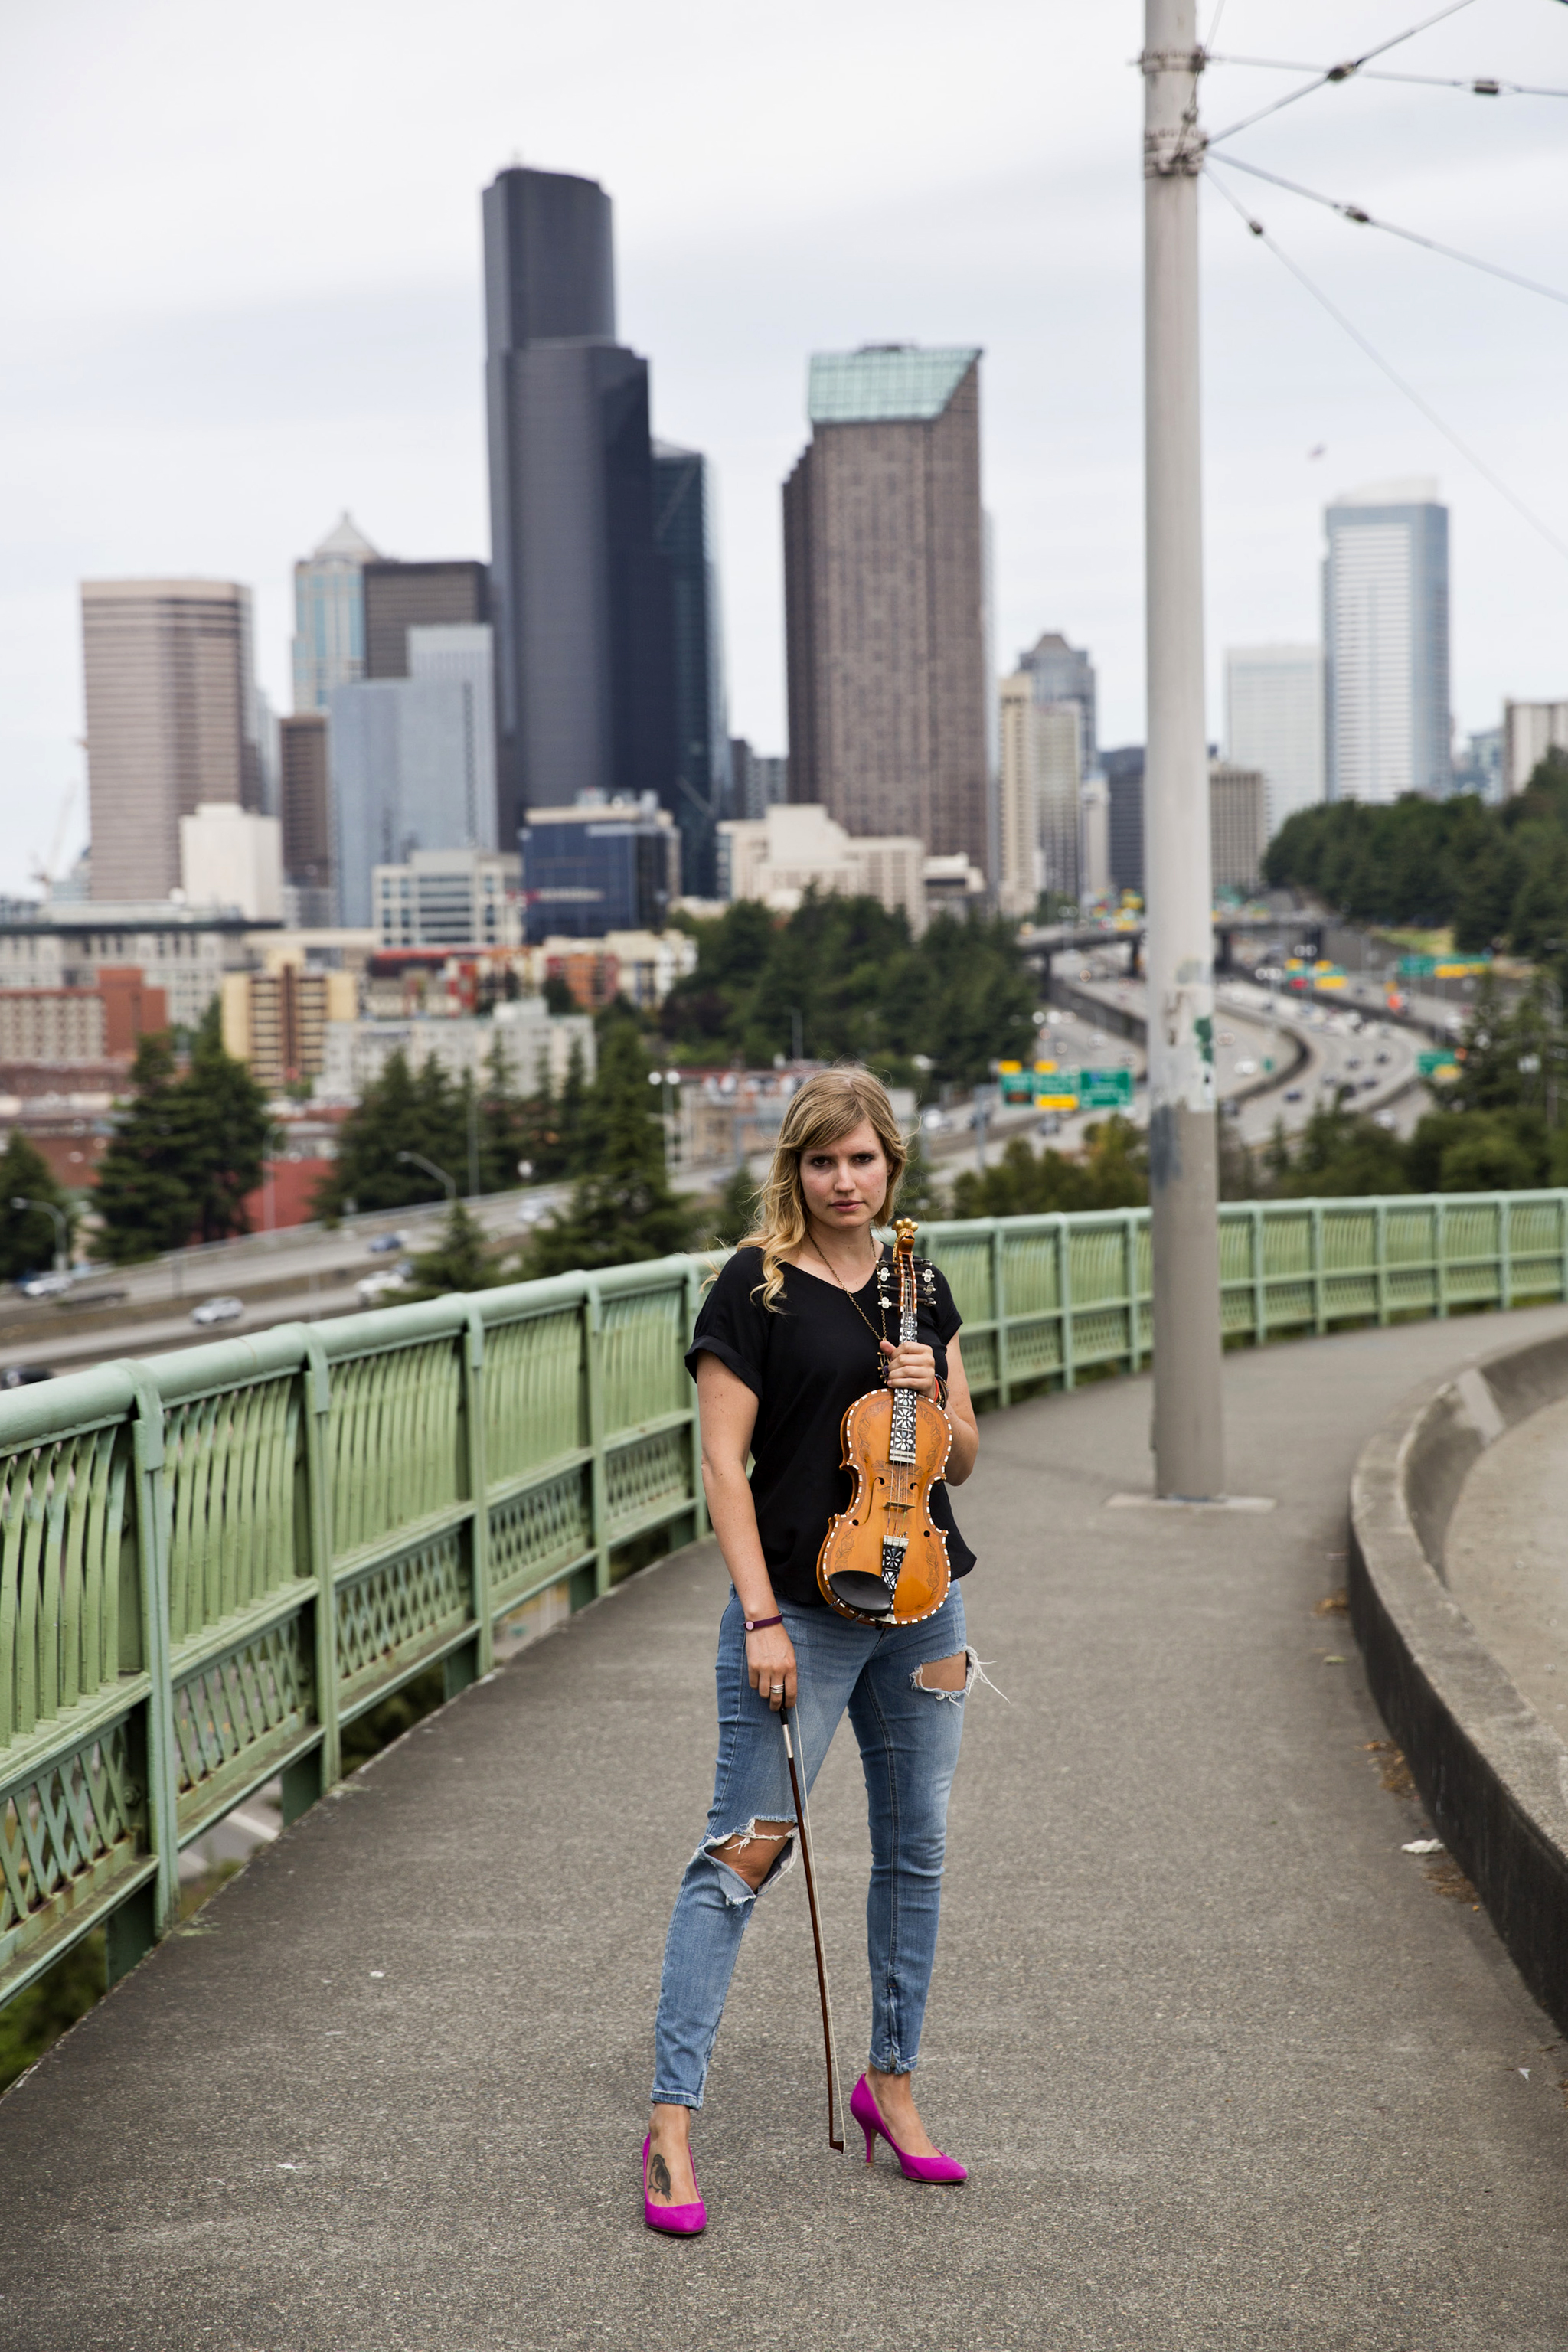 Today is 4th of July. But Norway's national day is much more important to me.   Rachel Nesvig, musician, Seattle